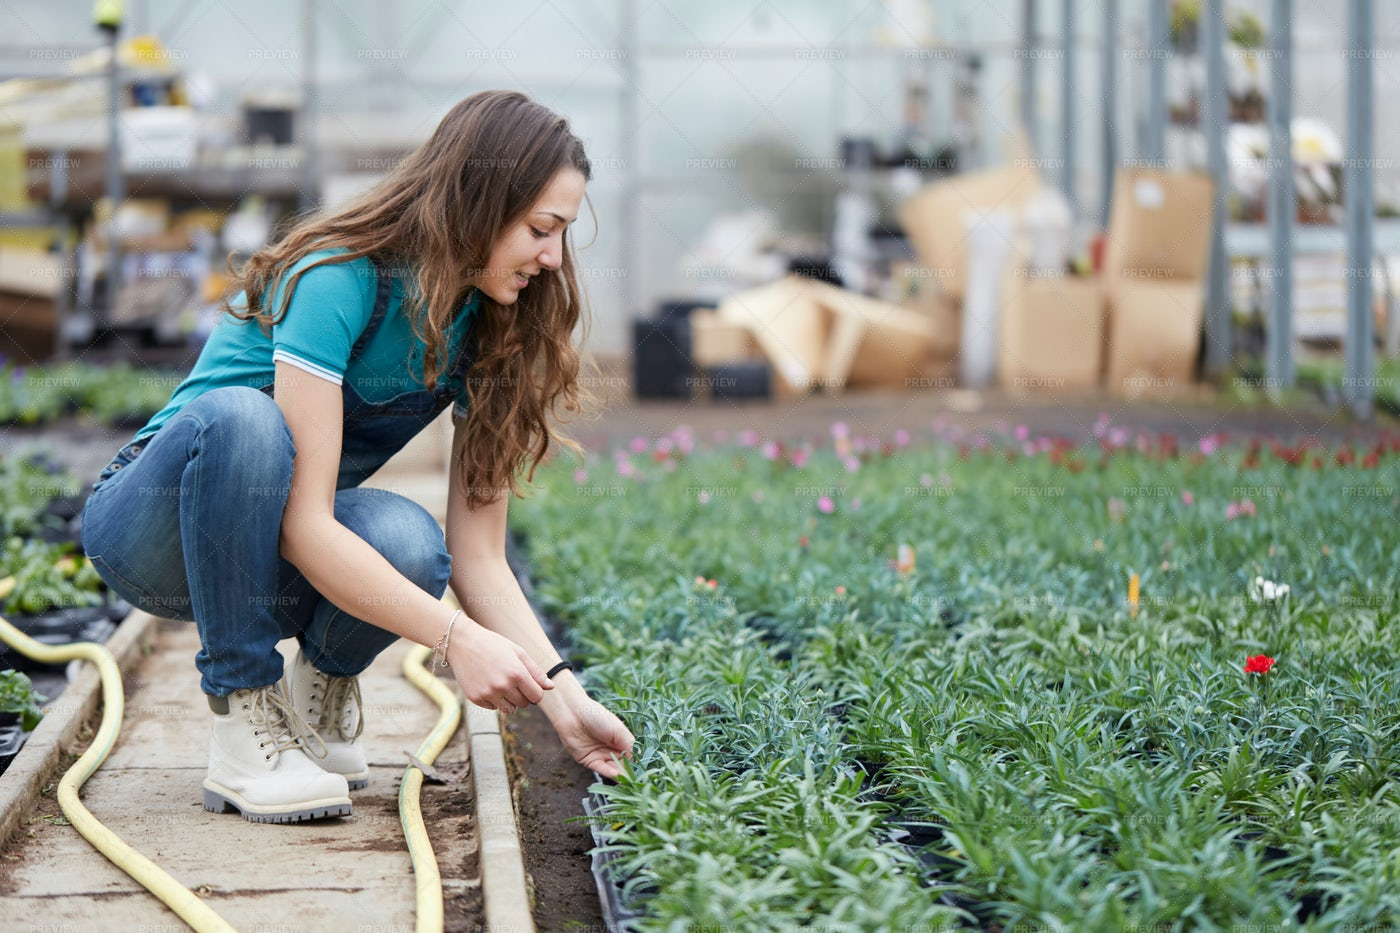 Working In A Flower Greenhouse: Stock Photos